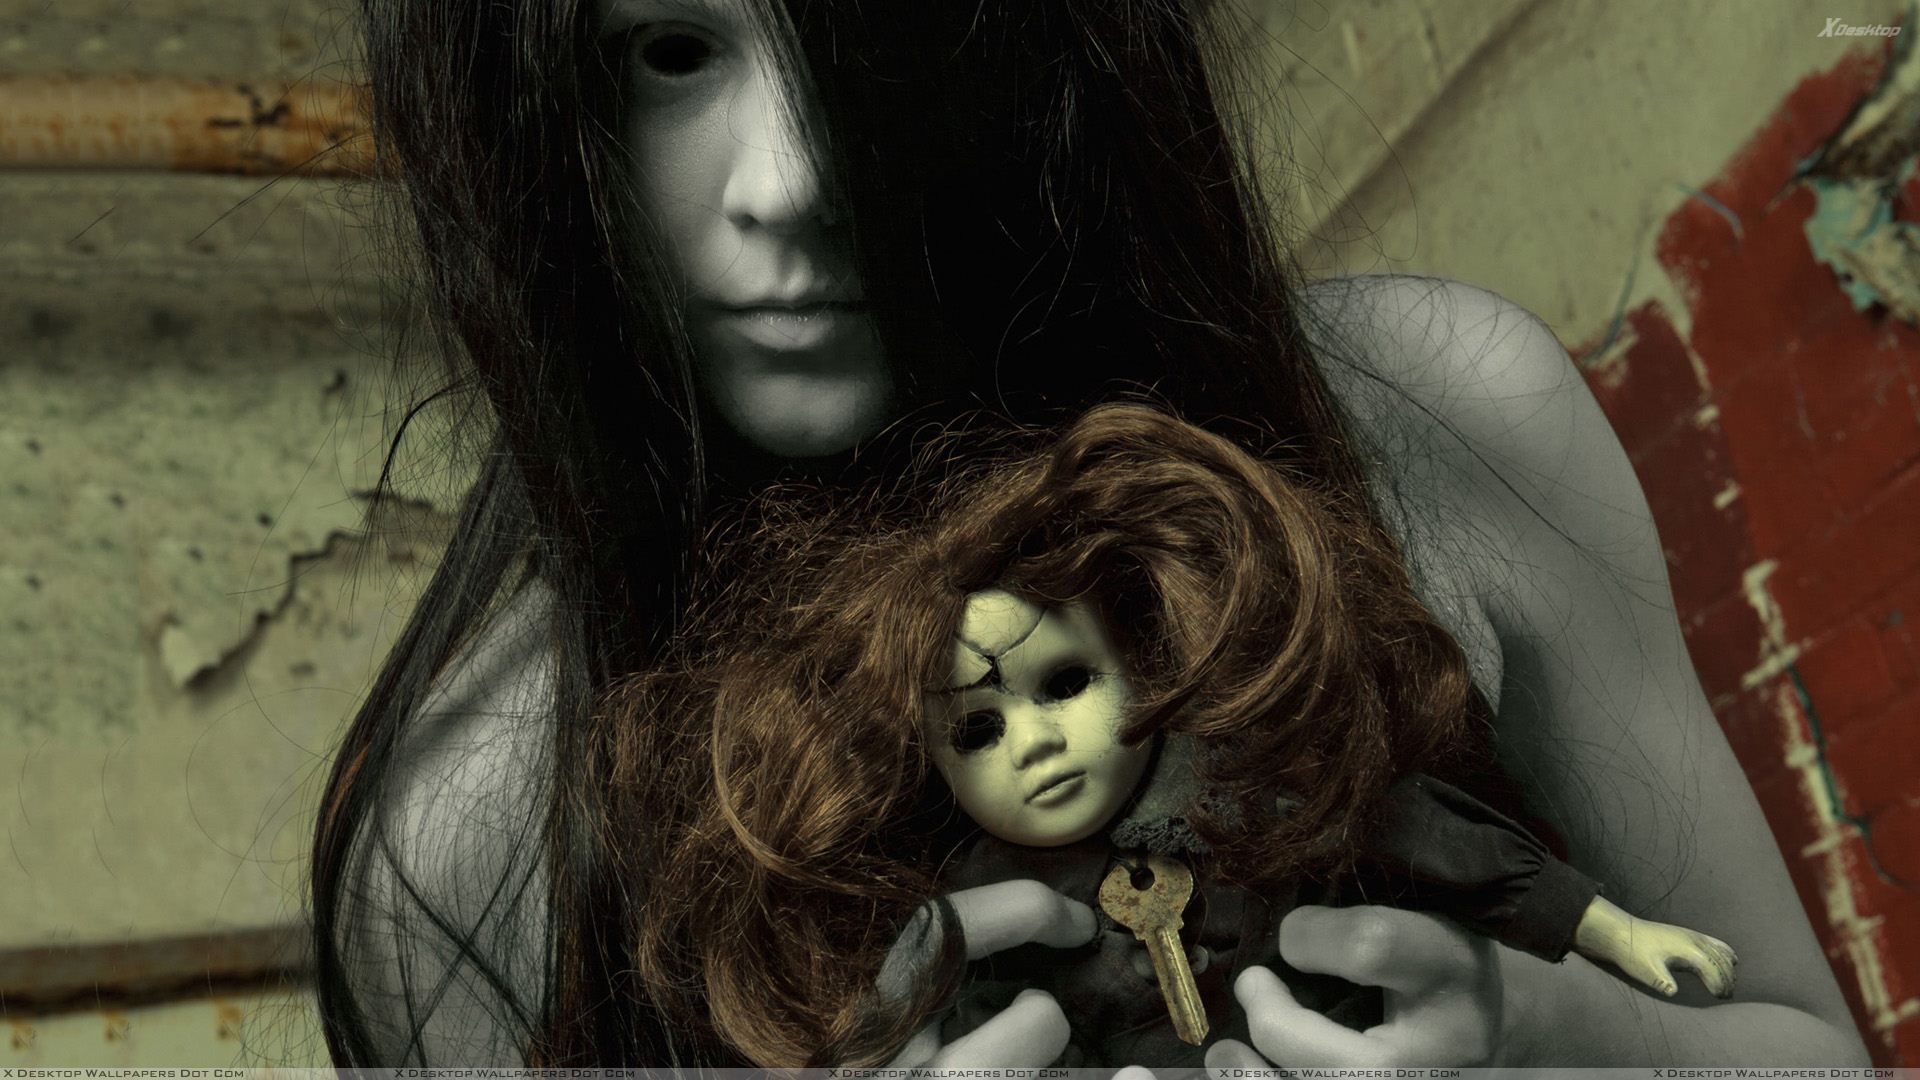 Creepy Ghost Girl With Ghost Barbie Creepy Ghost Creepy Horror Scary Wallpaper